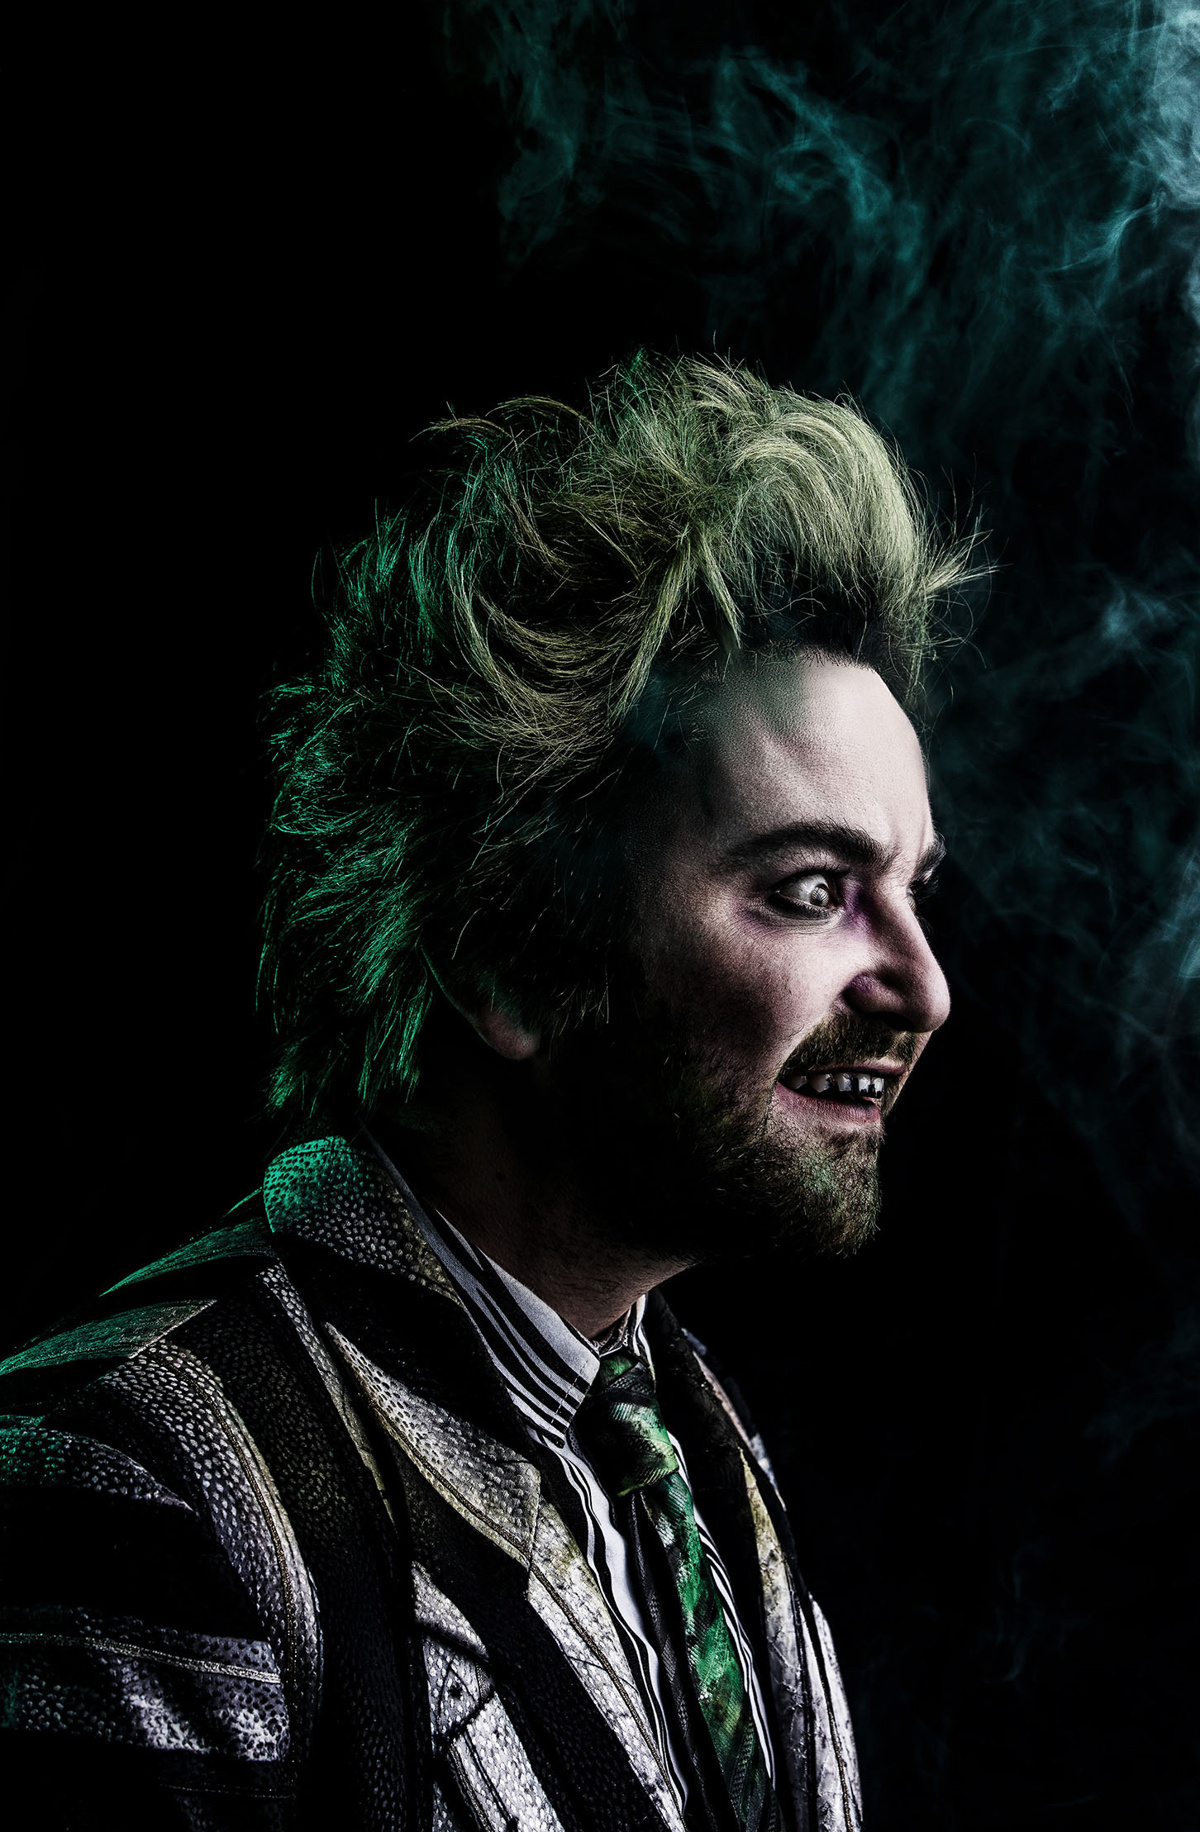 Alex Brightman as Beetlejuice in Beetlejuice.